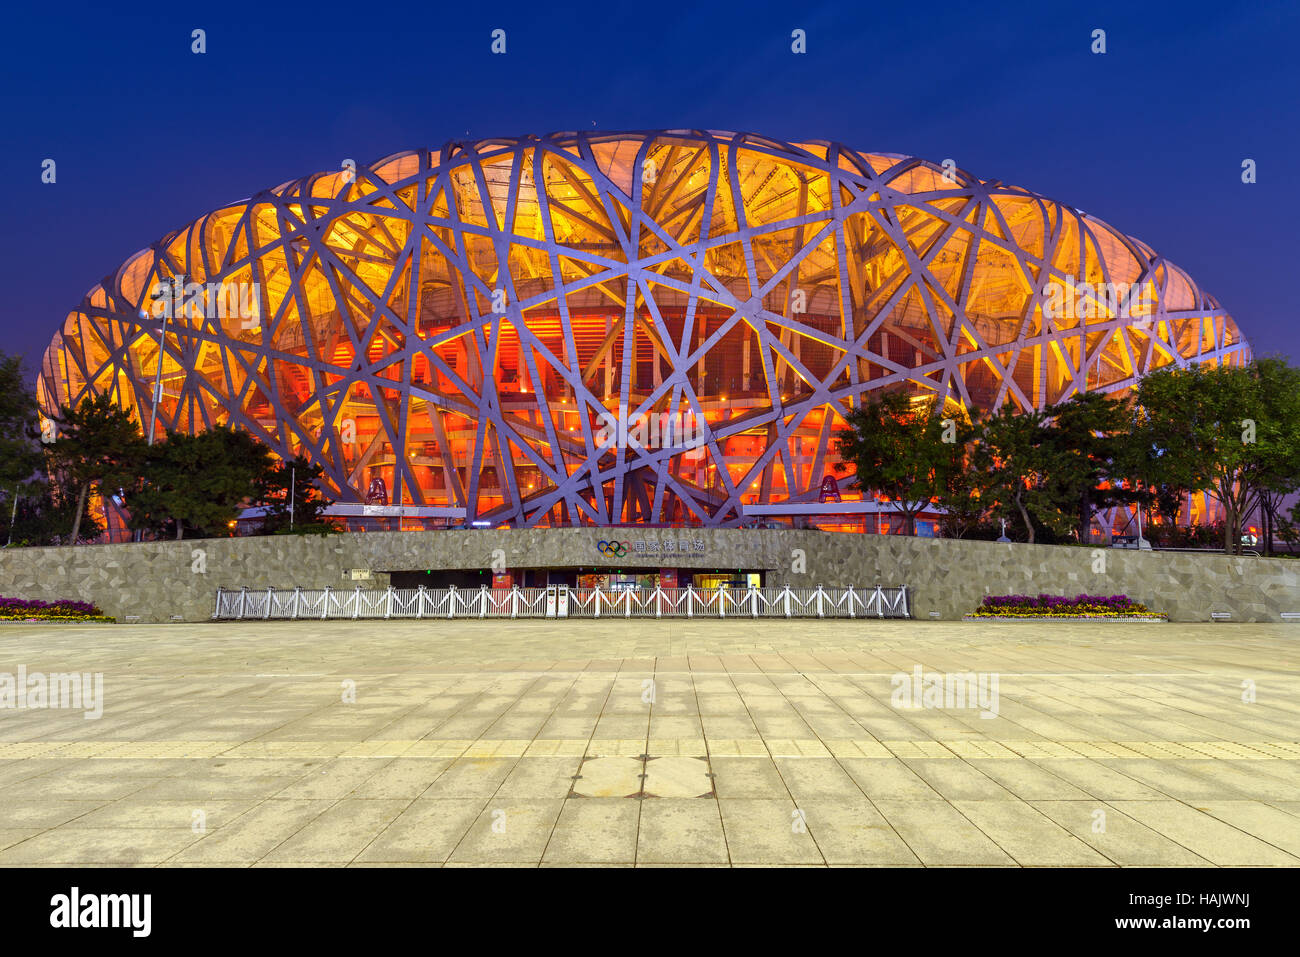 Stade national de Pékin - un front large-angle vue de la nuit de Beijing National Stadium, également connu Photo Stock